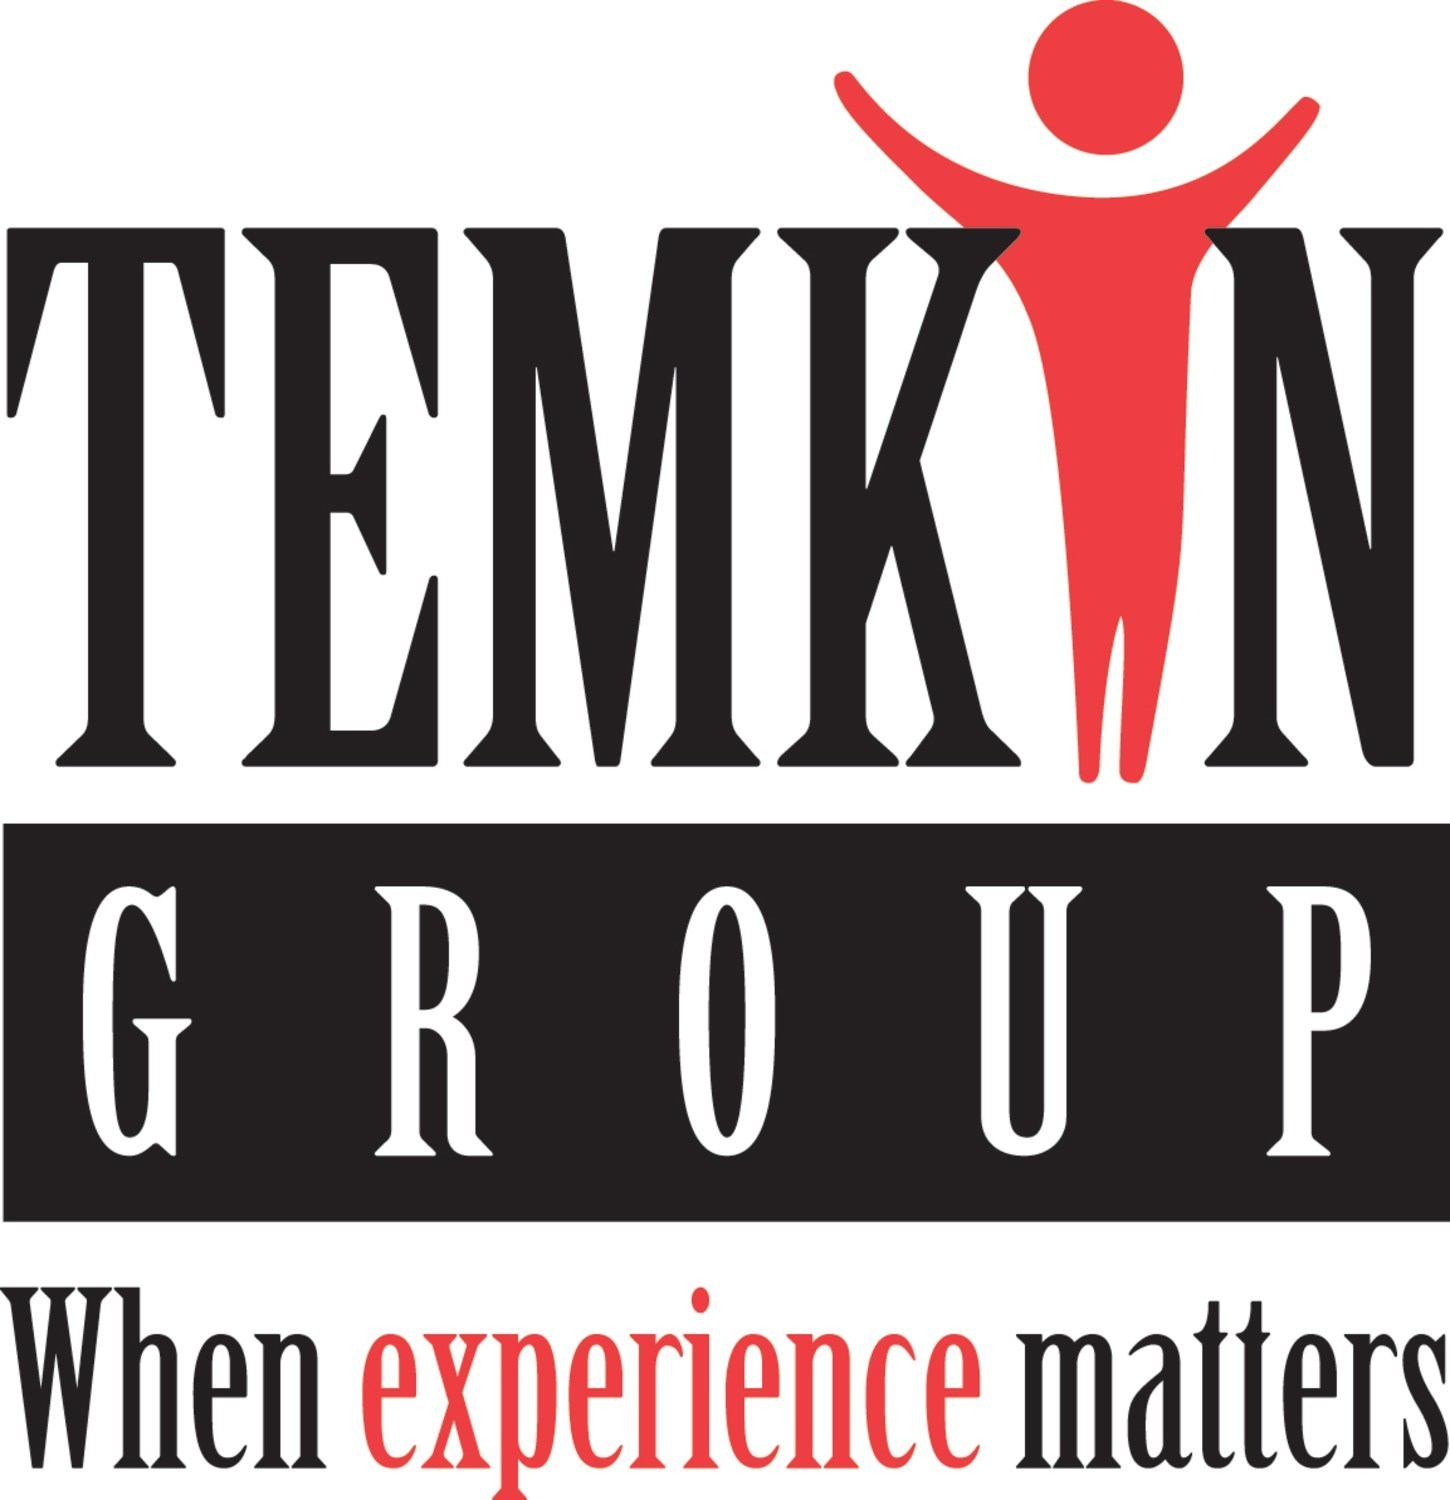 Temkin Group: When Experience Matters. Leading firm for driving customer experience transformation through insights, consulting, and training. (TemkinGroup.com)